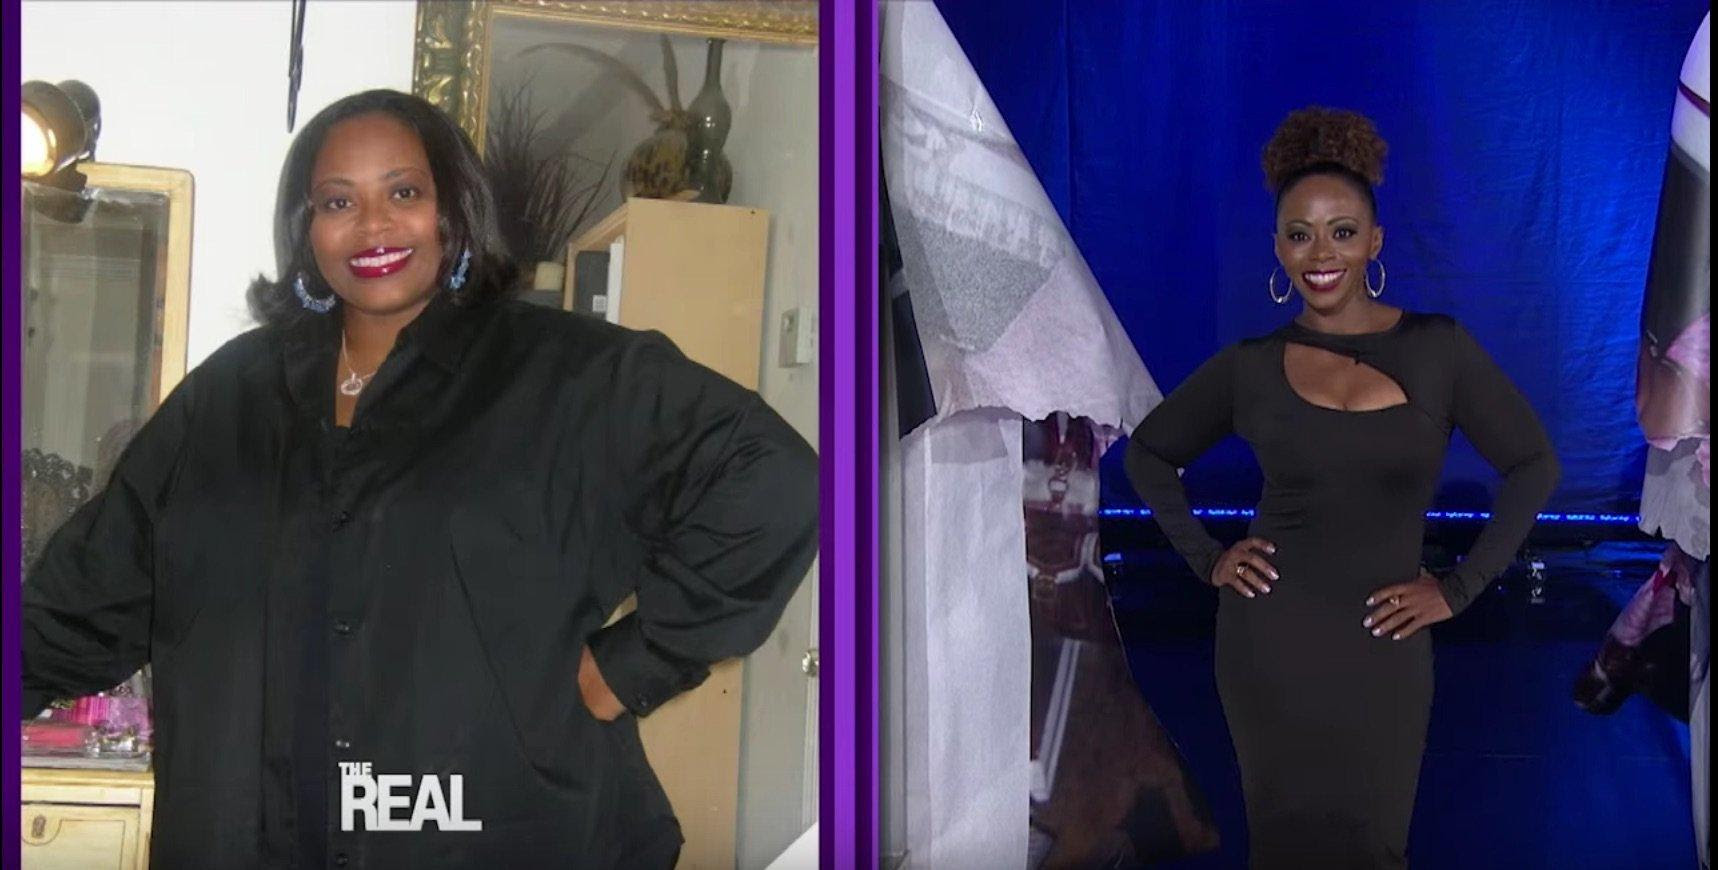 A Woman Has An Inspiring Story and Recommendation on How She Lost 100 Pounds